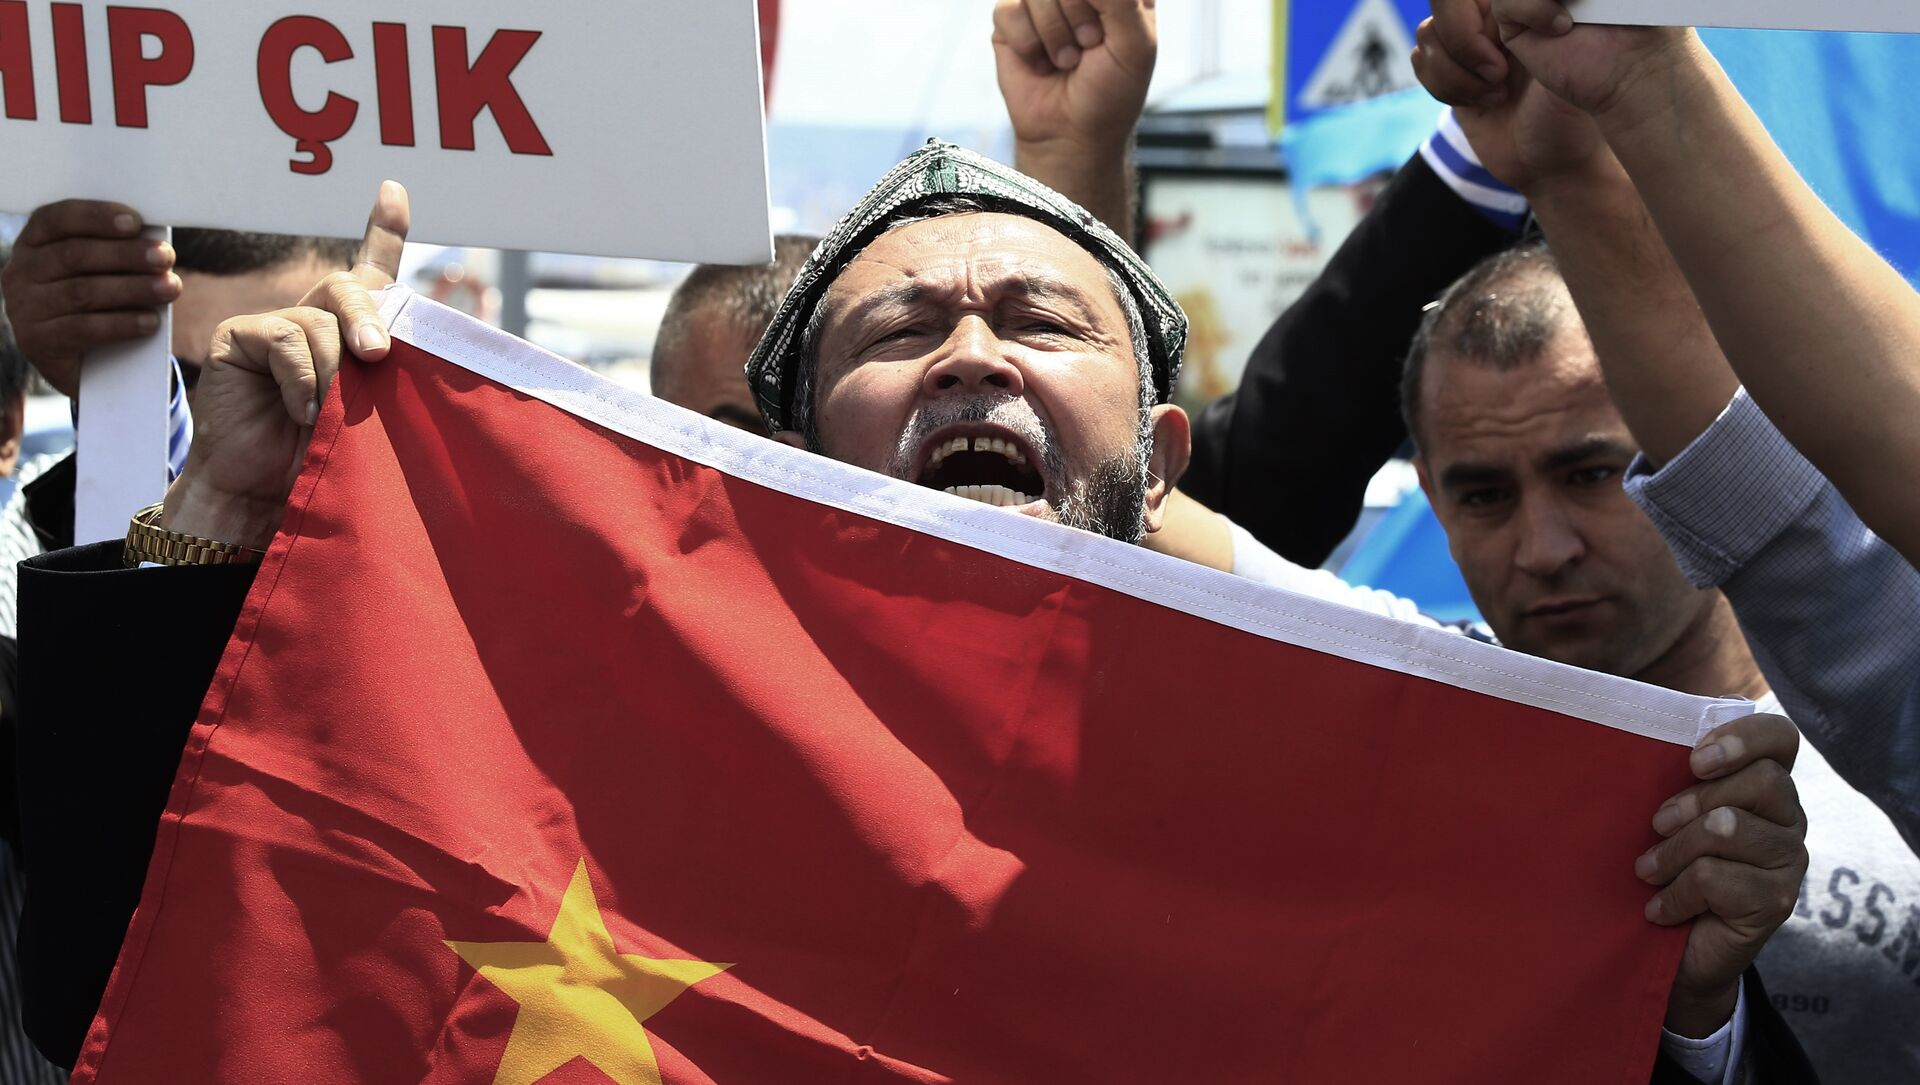 Uighurs living in Turkey and Turkish supporters, chant slogans as they hold a Chinese flag before burning it during a protest near China's consulate in Istanbul, Sunday, July 5, 2015.  - Sputnik France, 1920, 13.09.2021